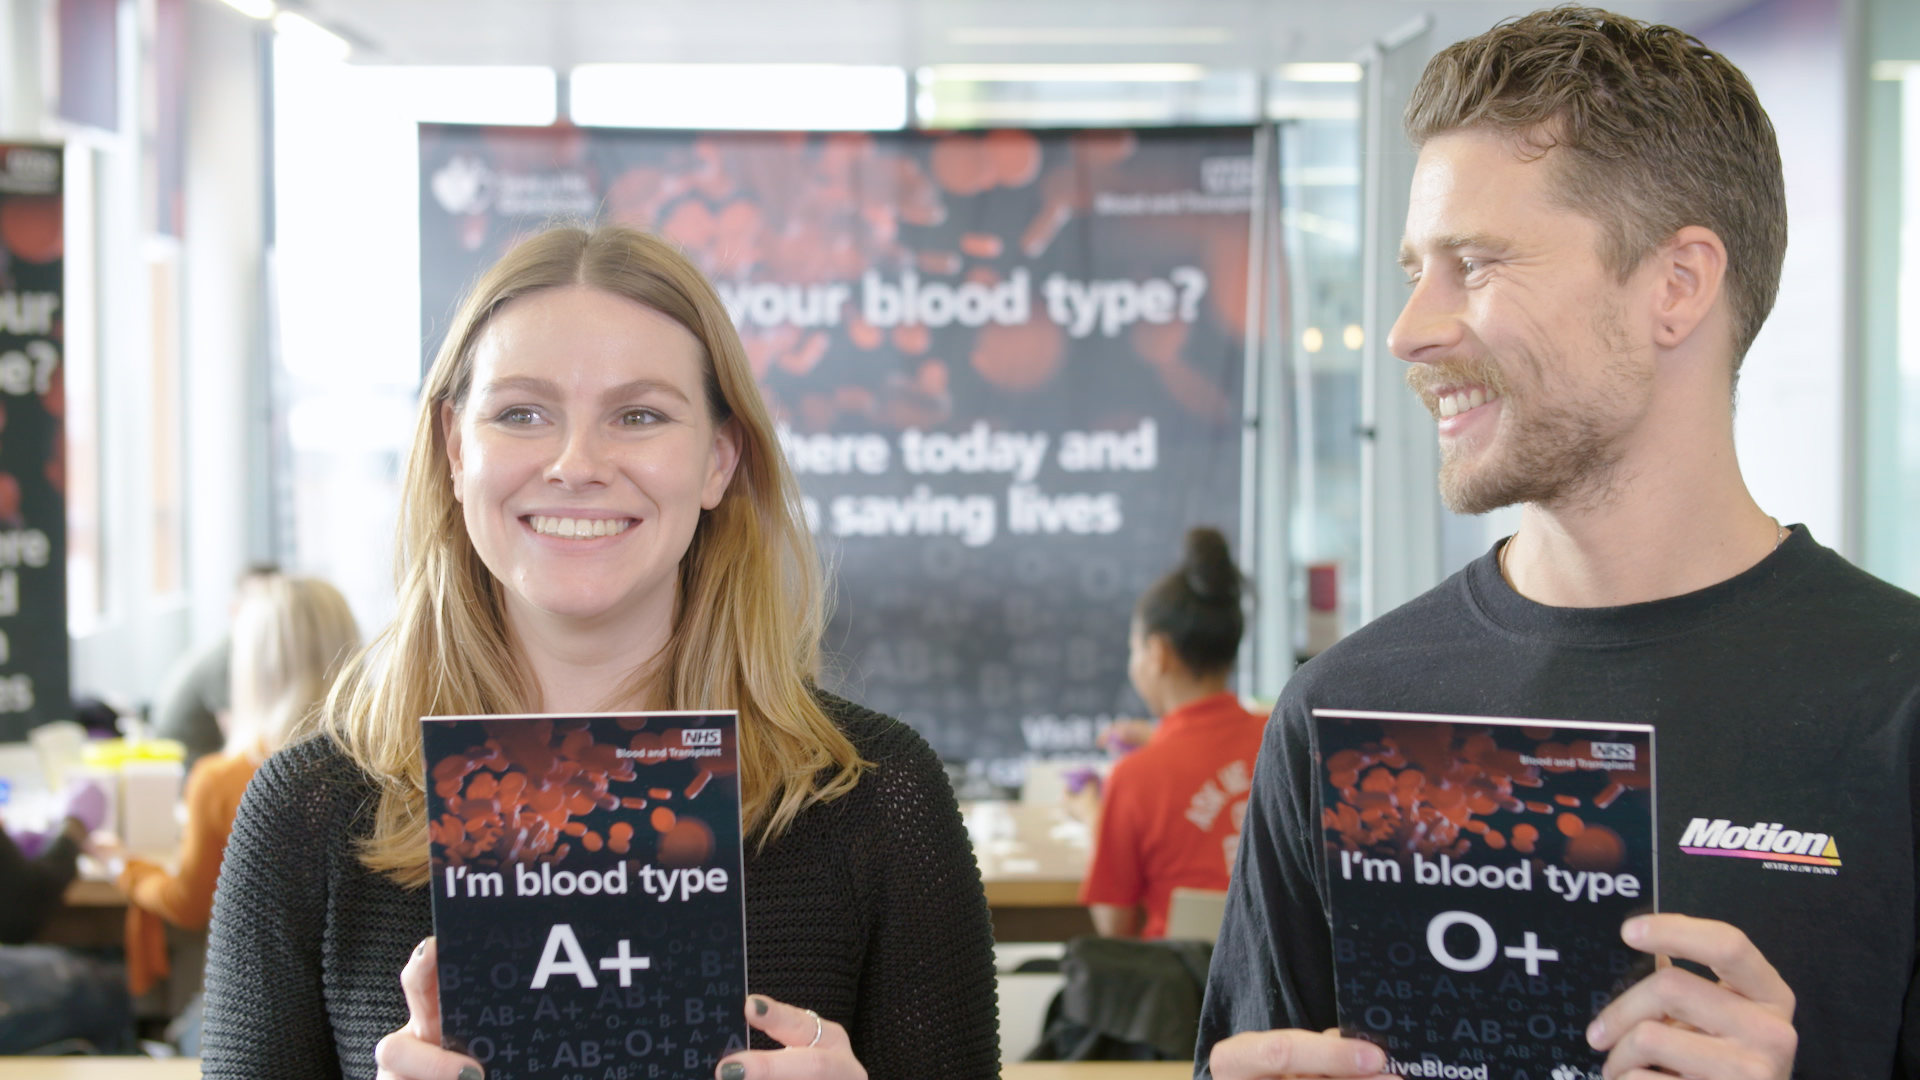 Two young people hold cards with their blood type on